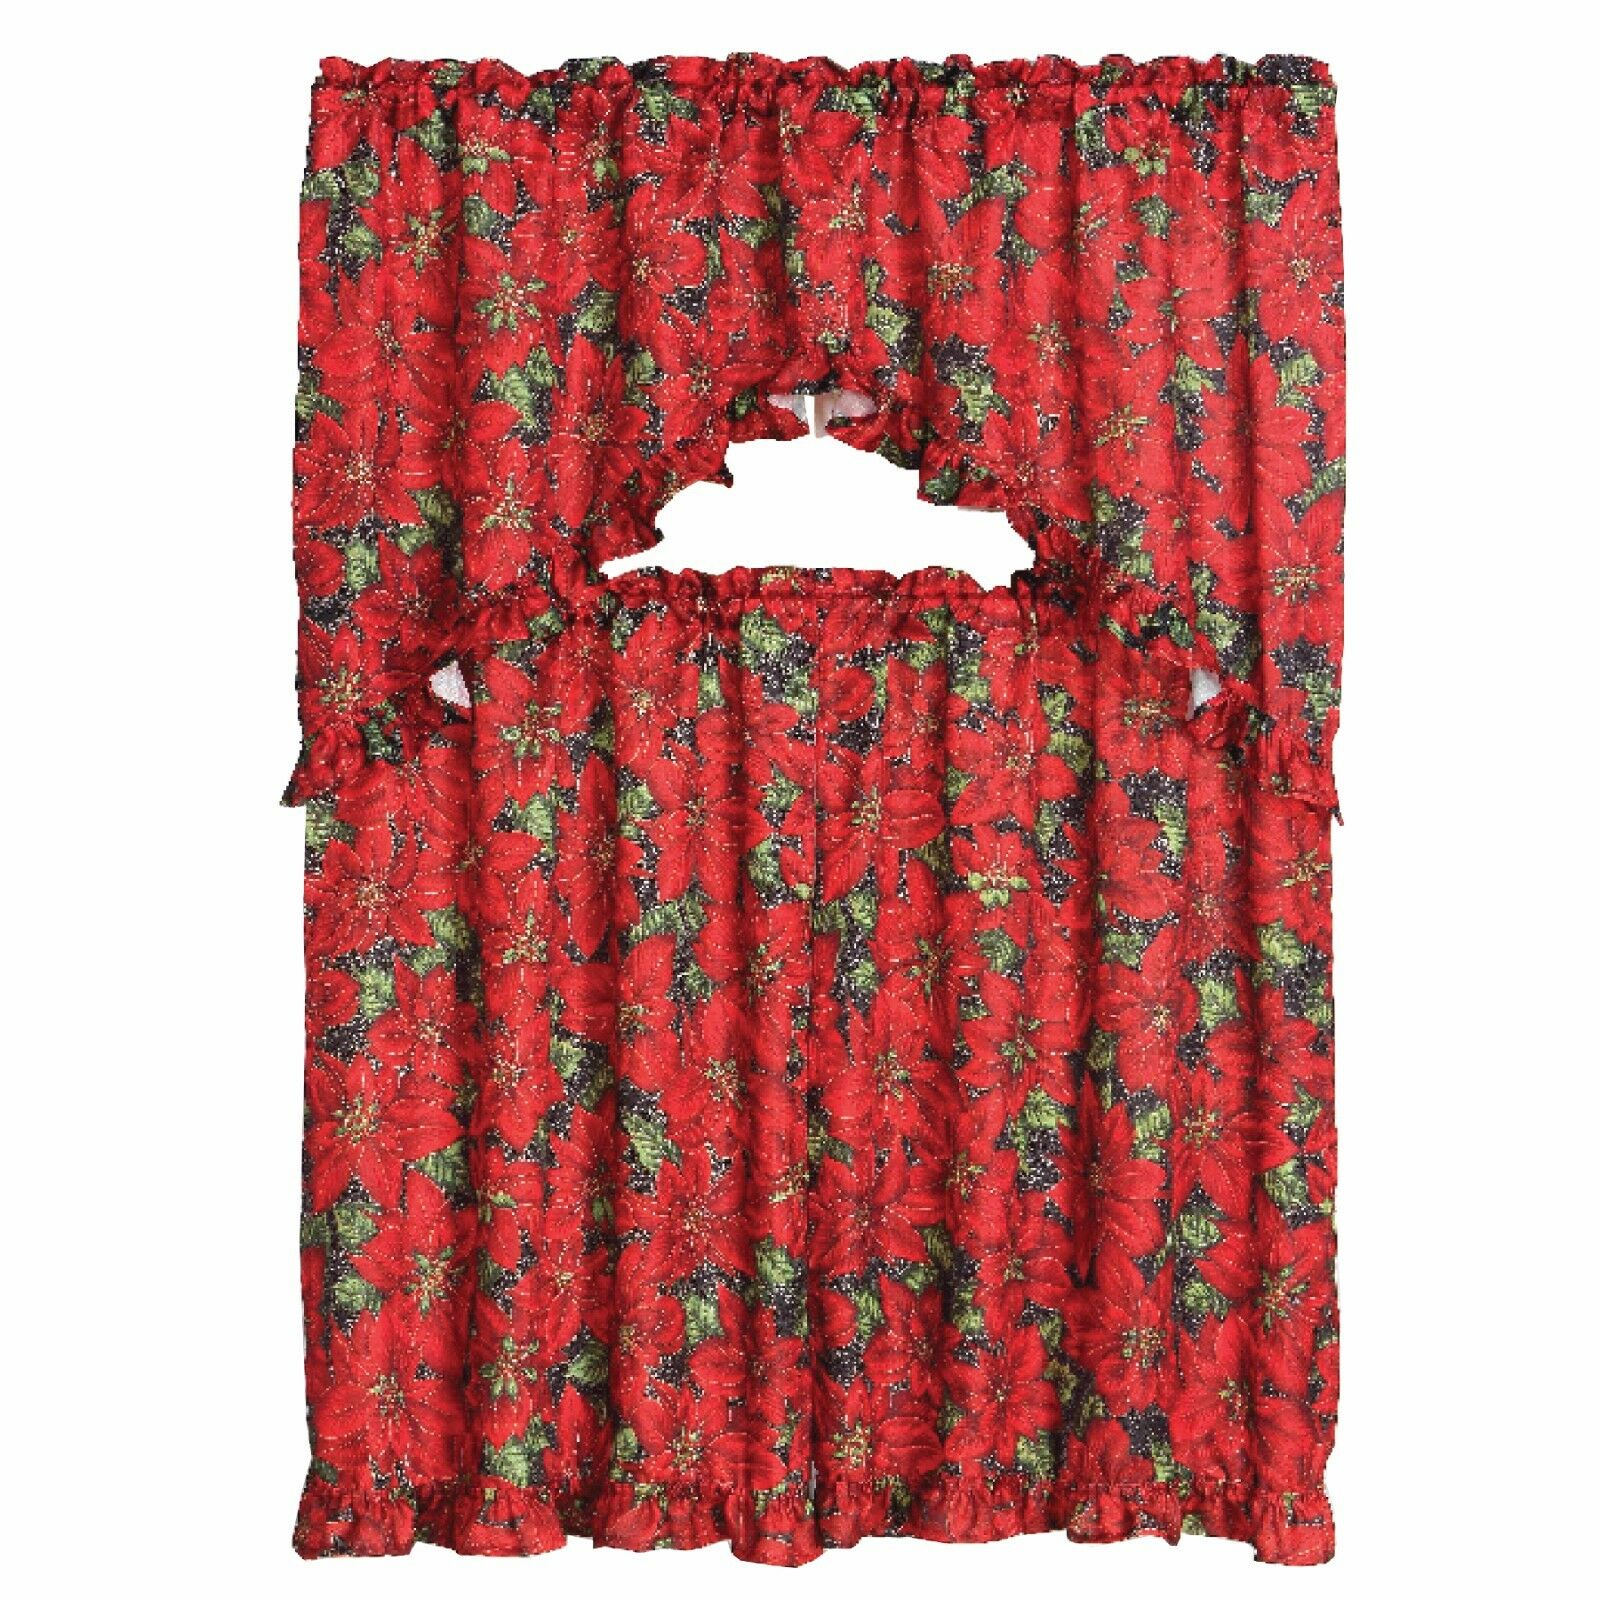 Kitchen Tier Curtains Sets 3 Piece Christmas Decorative Kitchen Curtain Set Ruffled